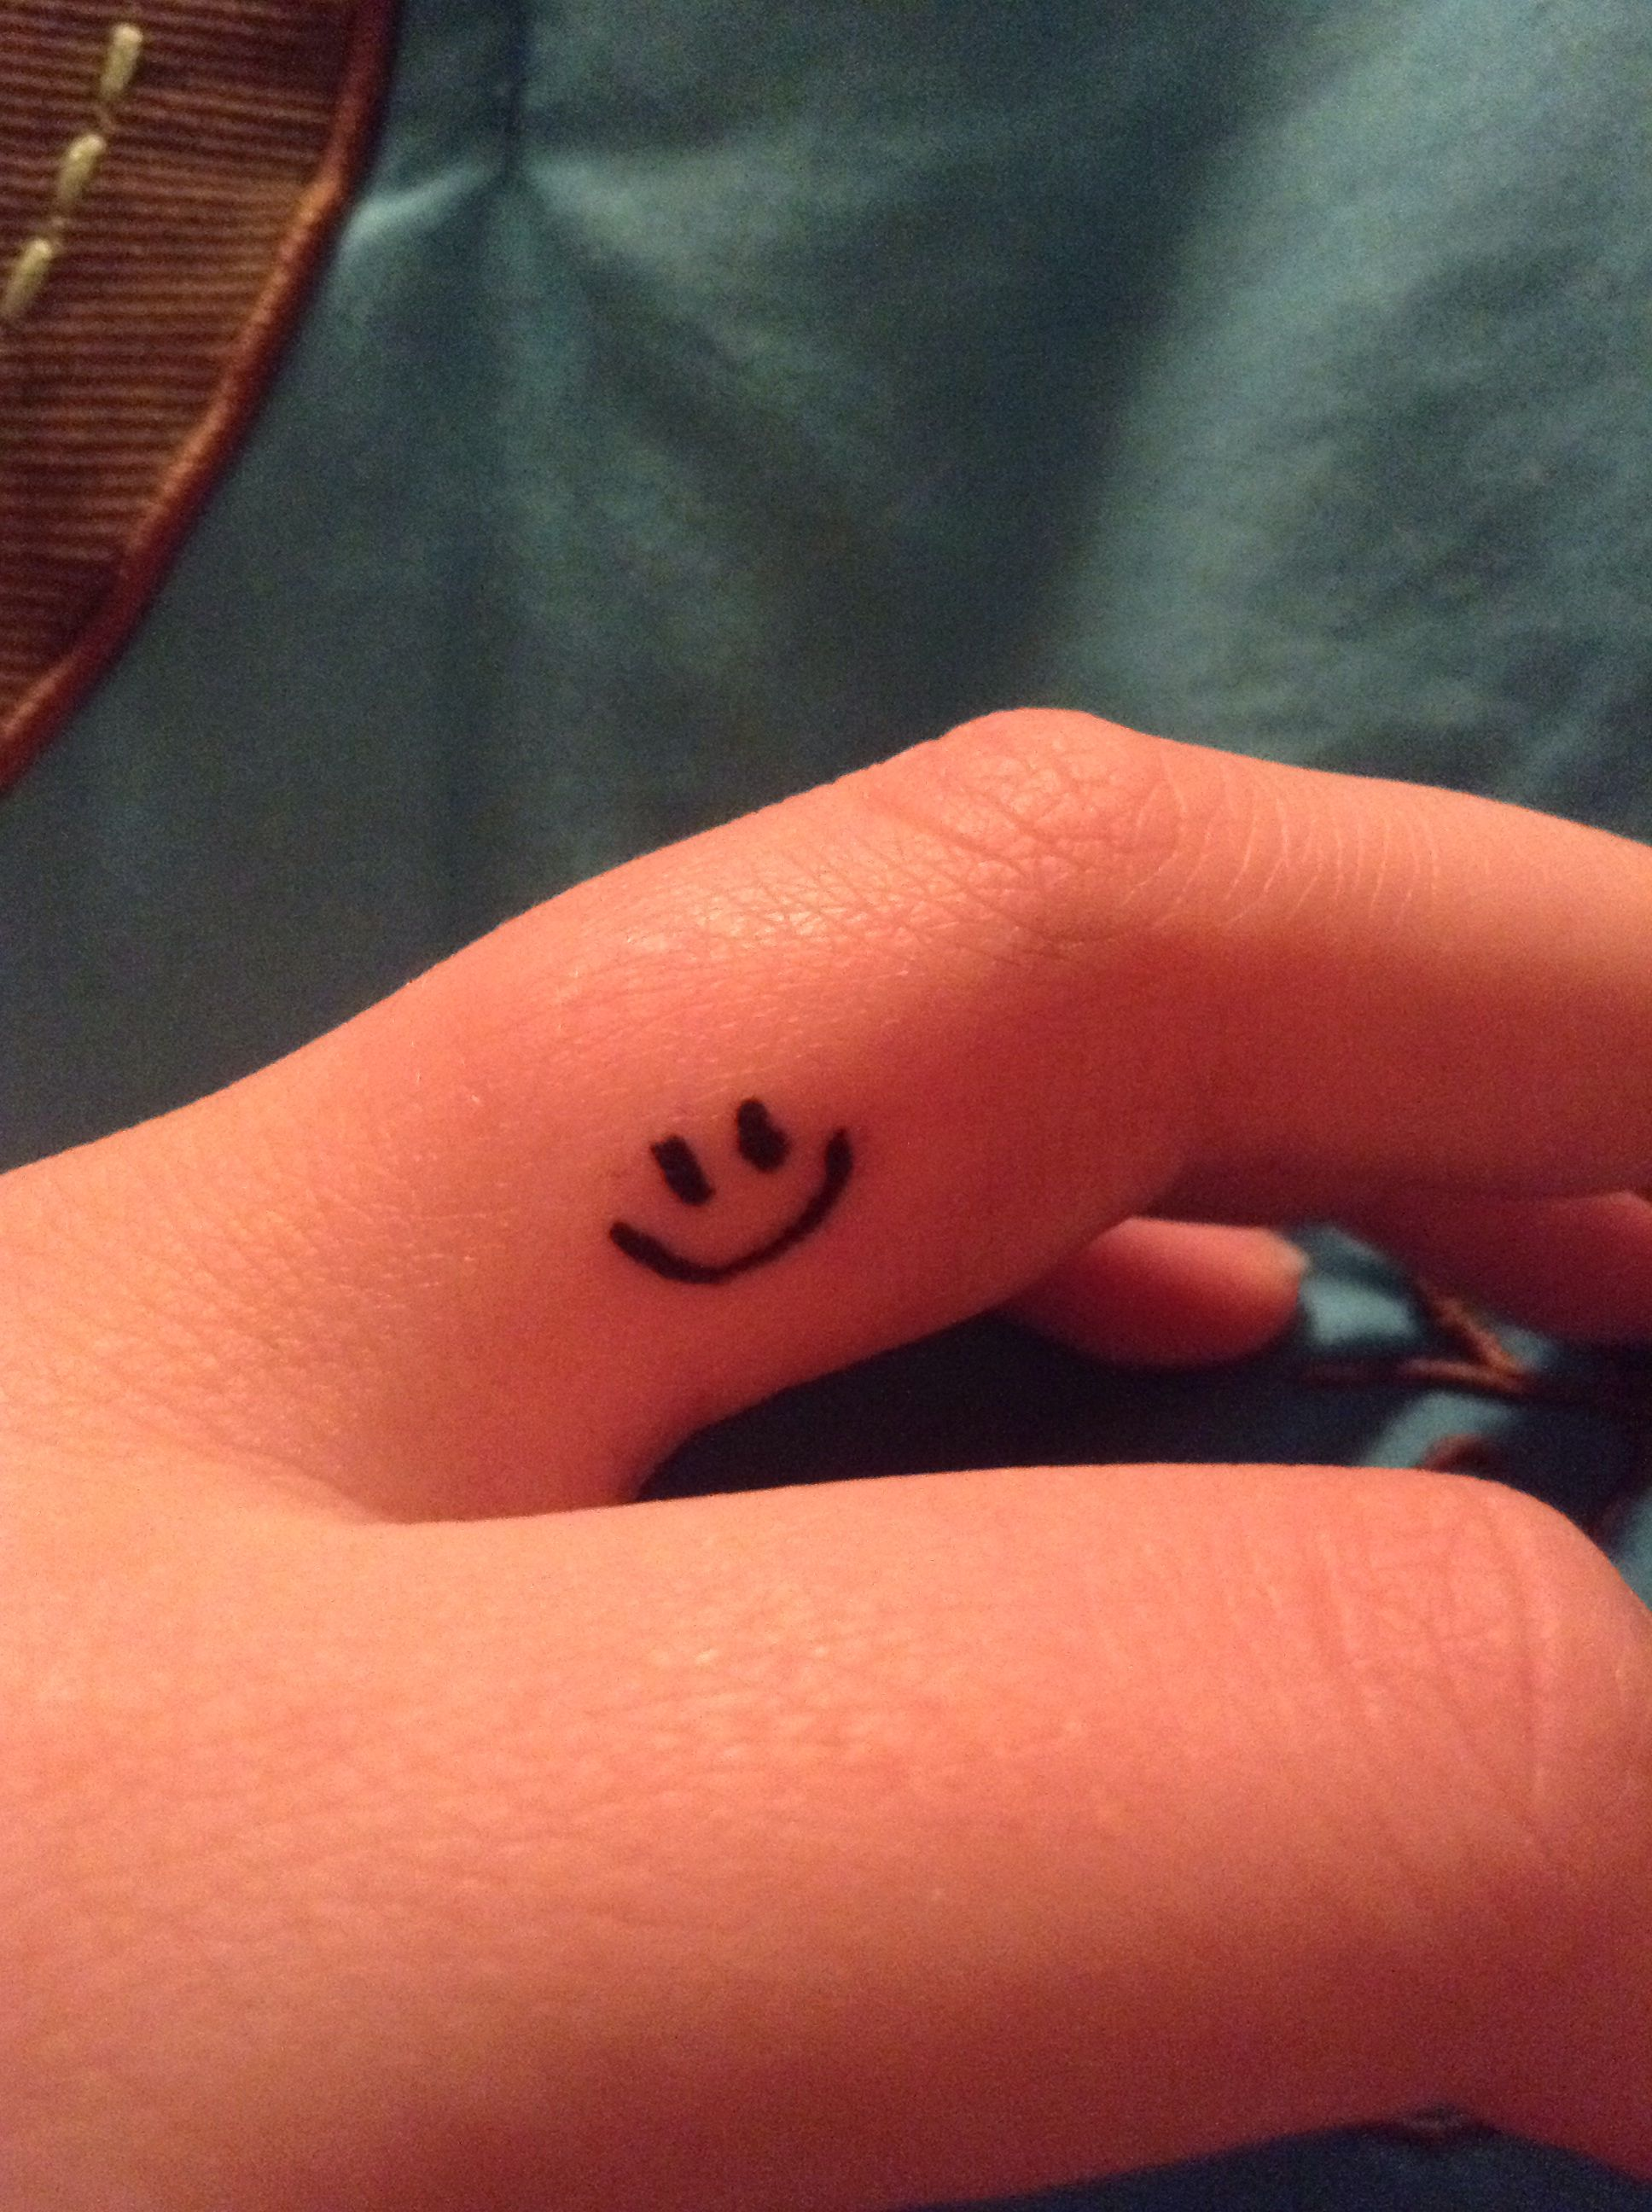 my new smiley face tattoo tattoos pinterest face tattoos tattoo and piercings. Black Bedroom Furniture Sets. Home Design Ideas